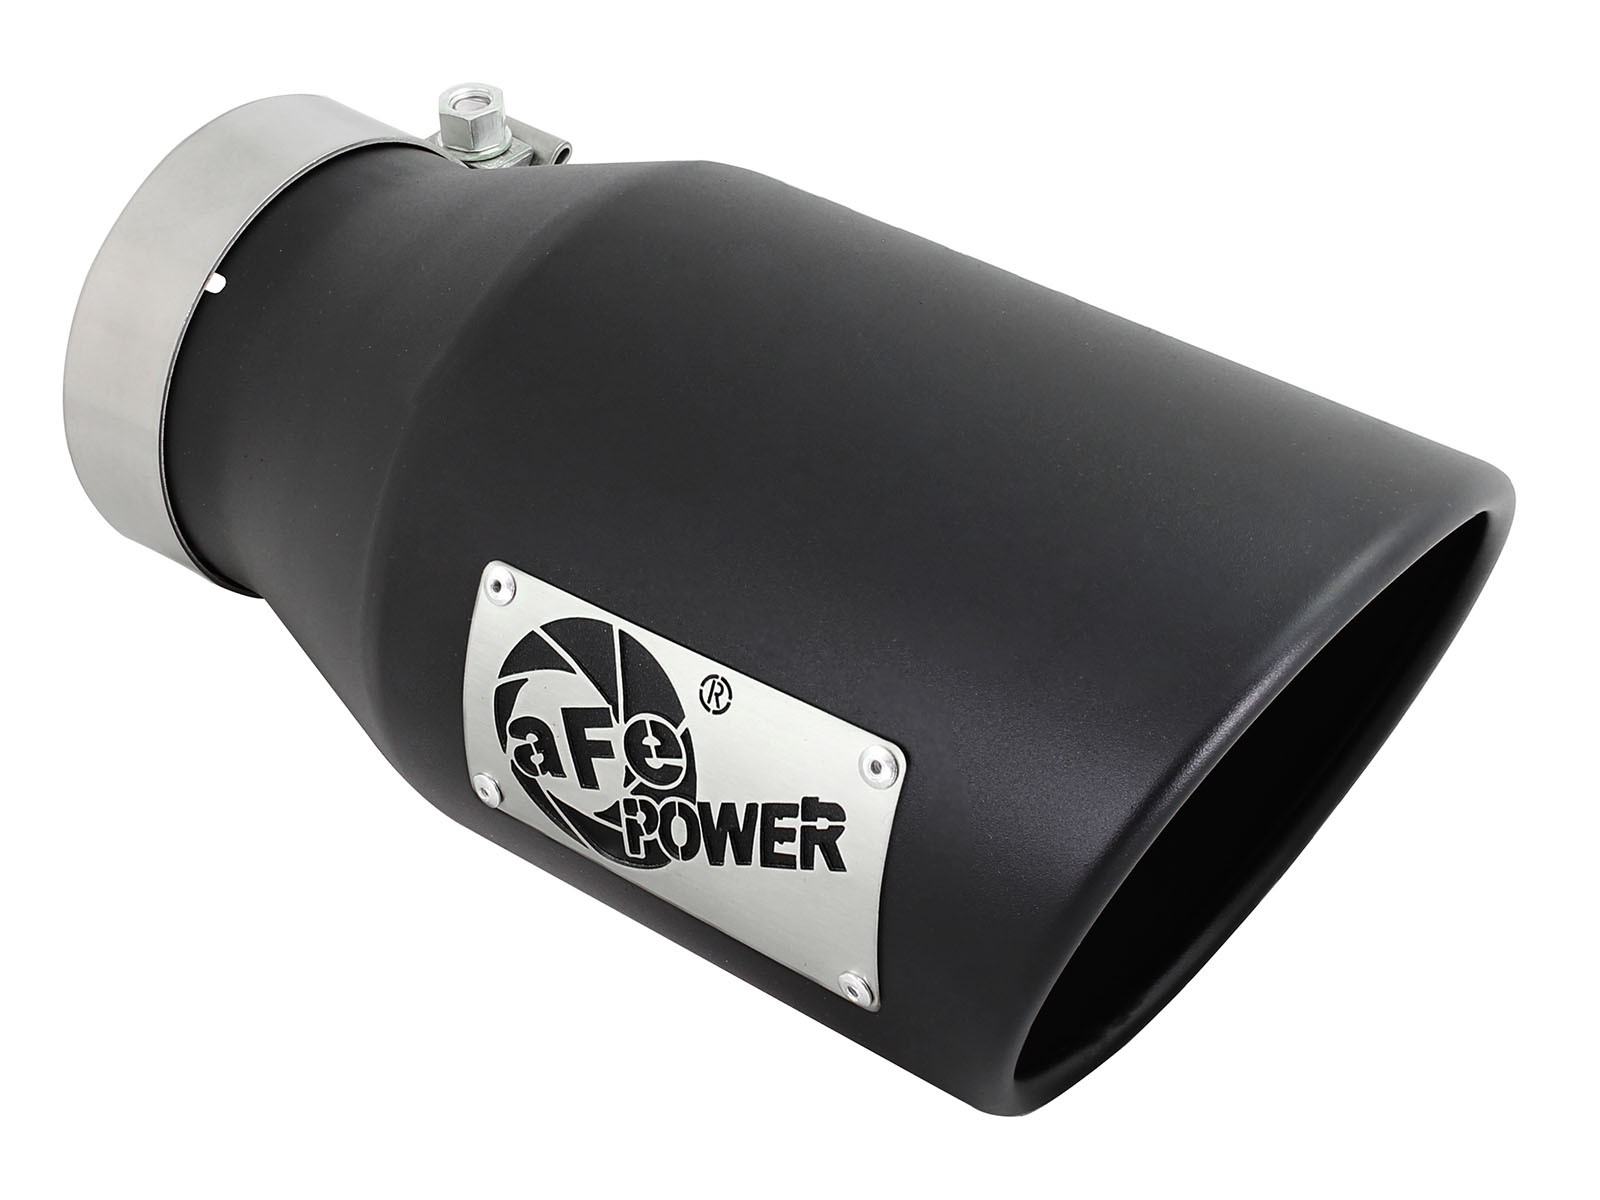 "aFe POWER 49T40601-B12 MACH Force-Xp 4"" 304 Stainless Steel Exhaust Tip"